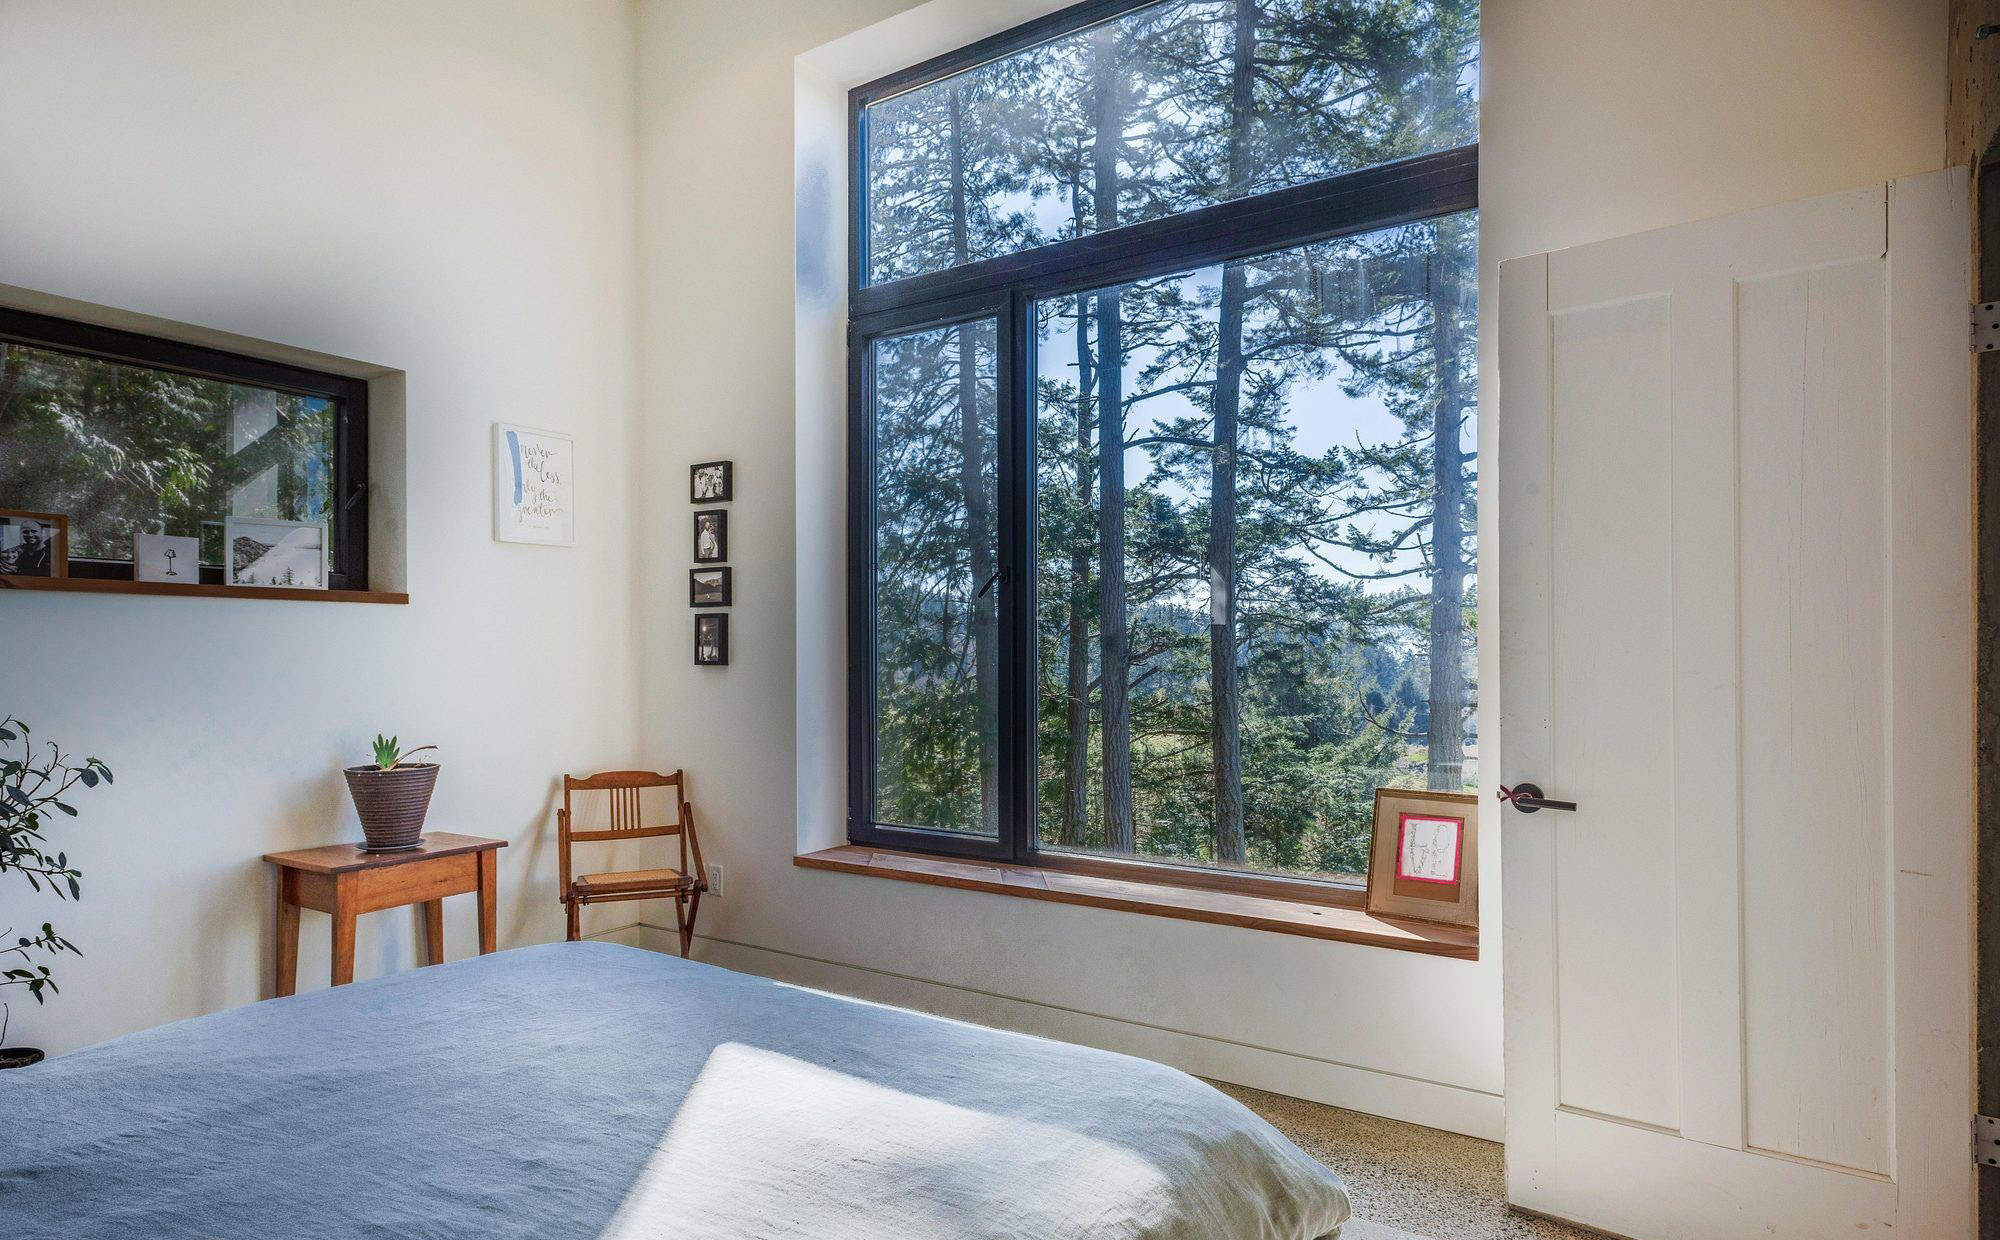 Bedroom with a very simple wooden window seat.